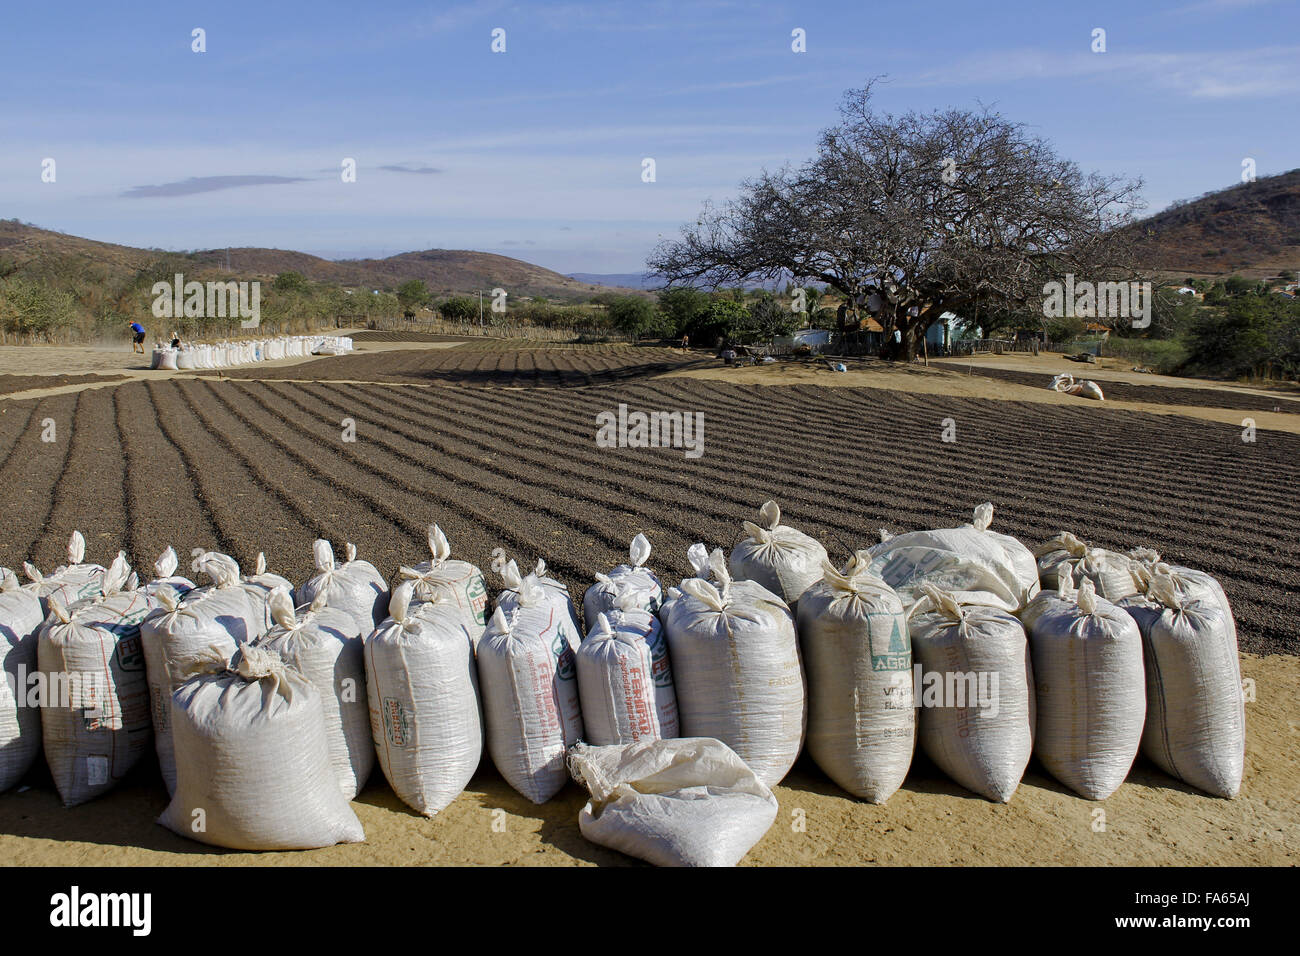 Sacks and yard with drying cafe through the savanna in the Bahian backlands - Stock Image